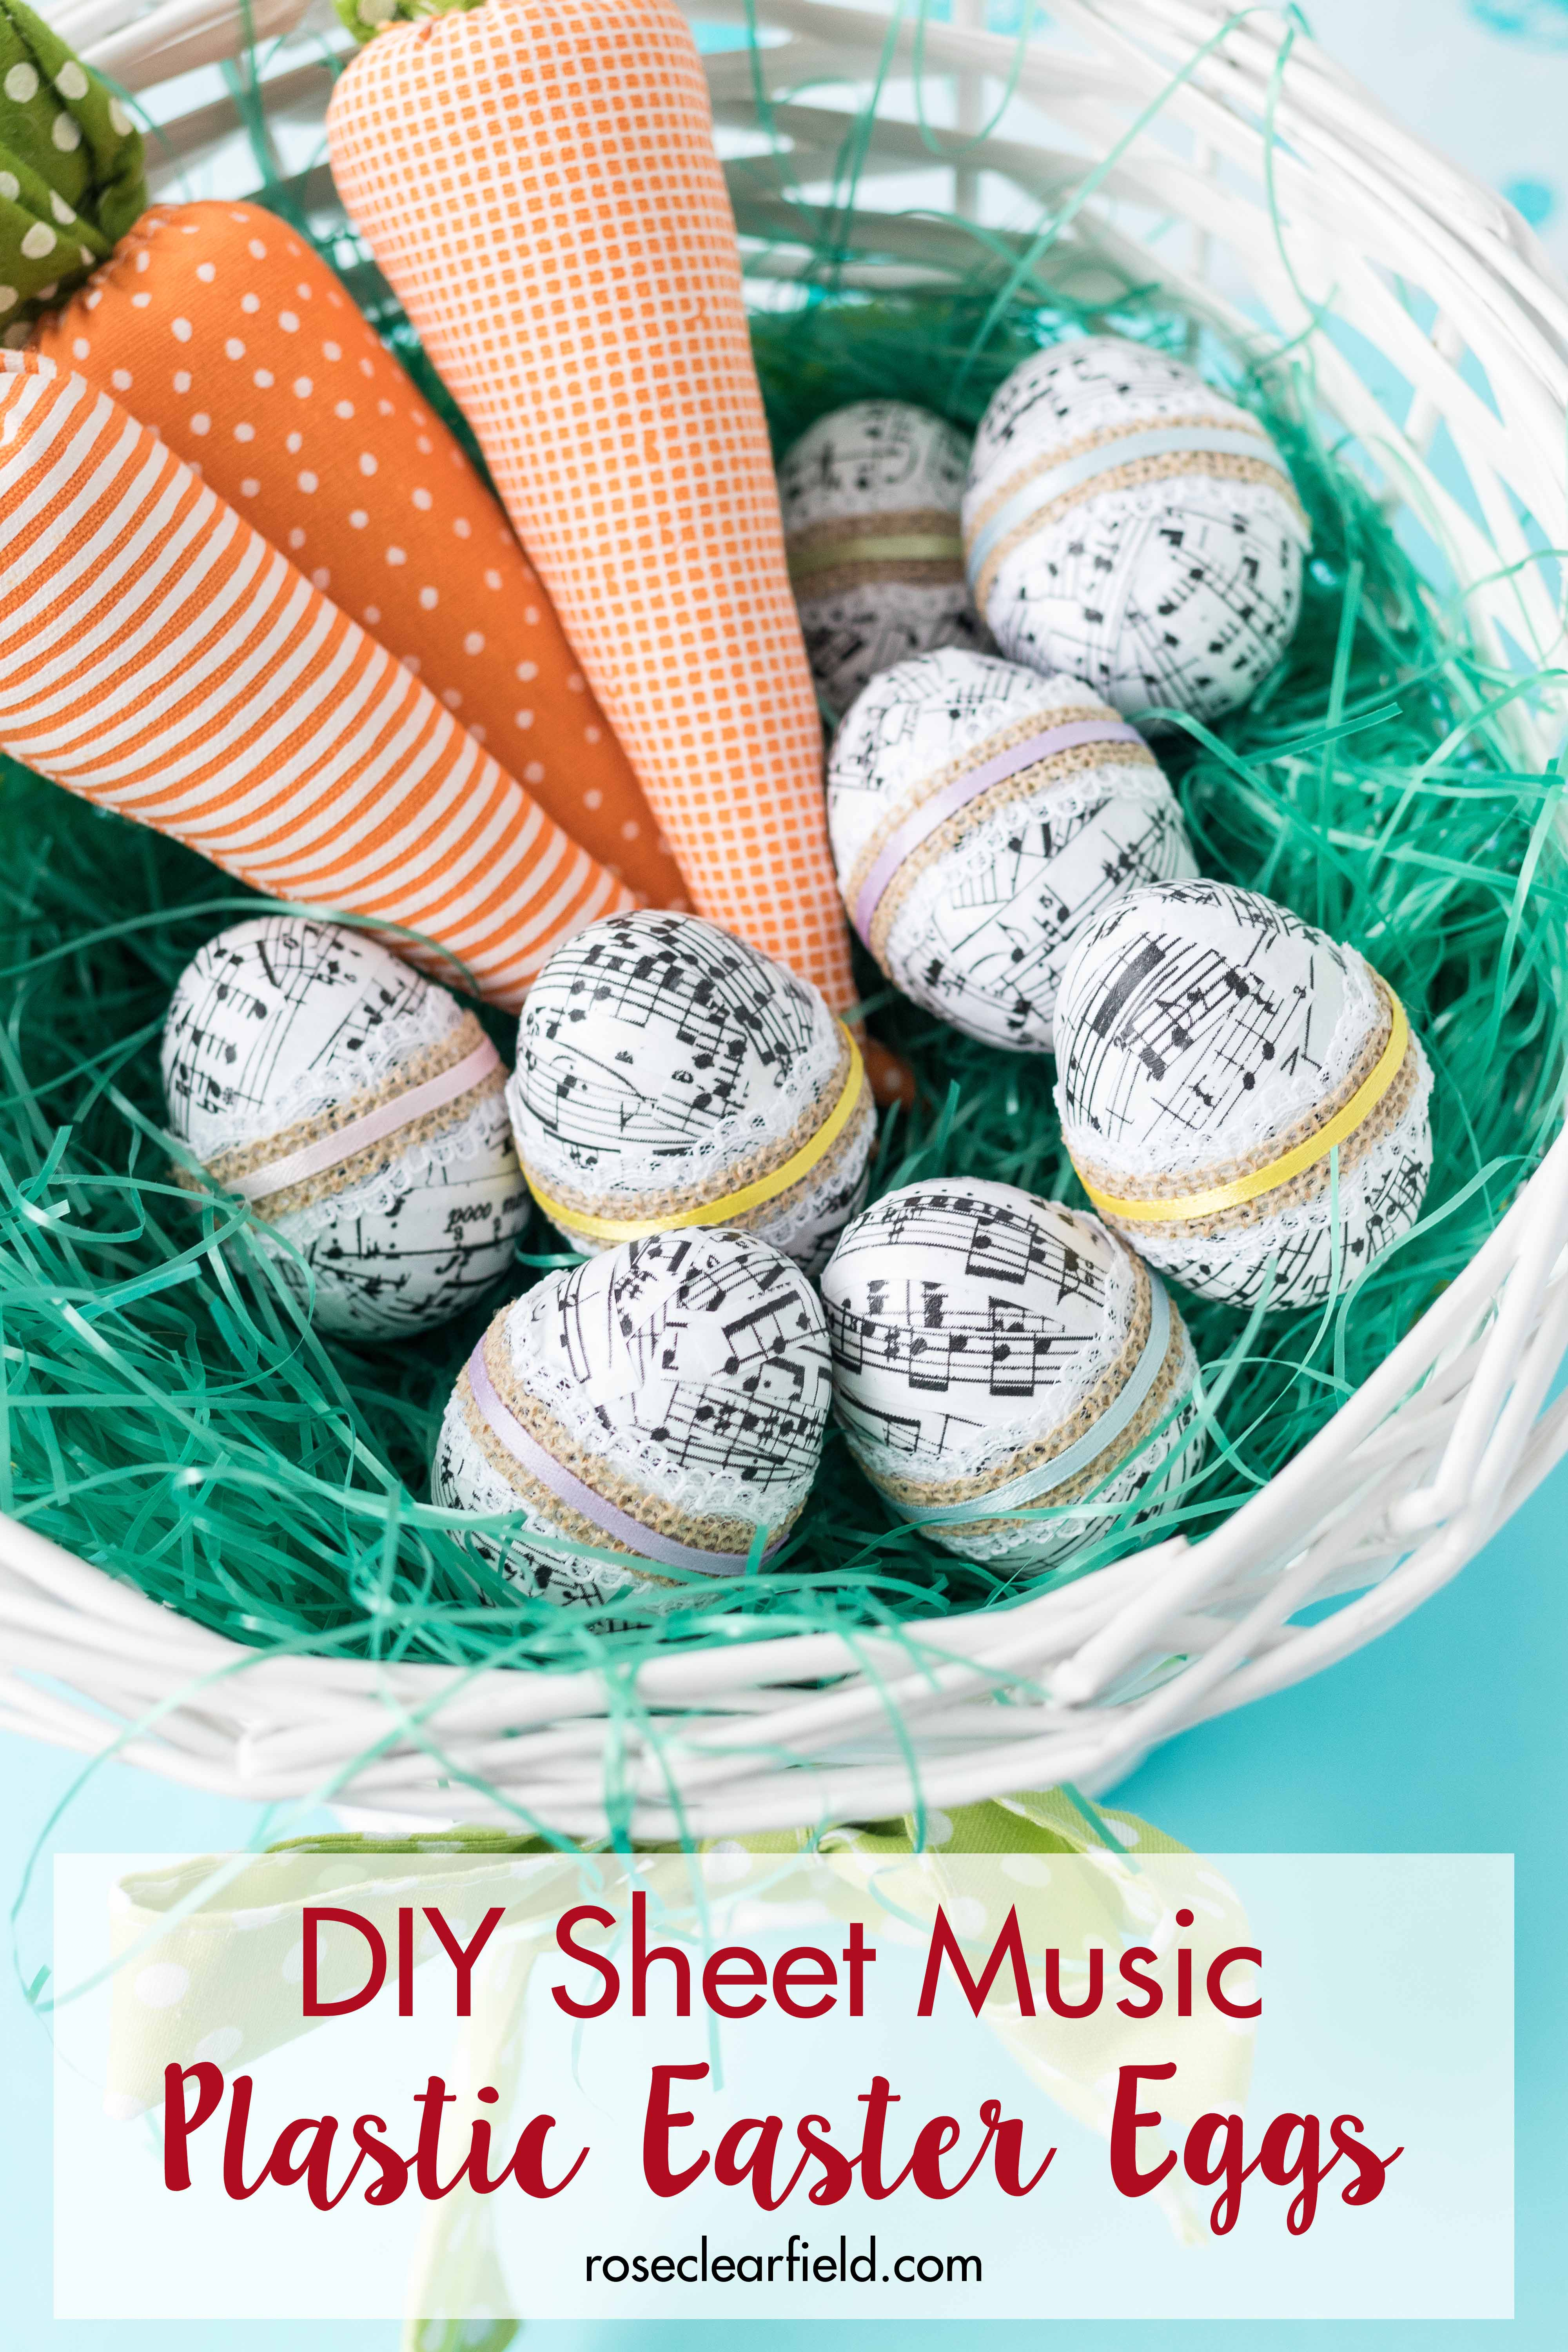 Learn how to make sheet music plastic Easter eggs! An easy DIY project for the whole family that makes a cute Easter decoration. | https://www.roseclearfield.com